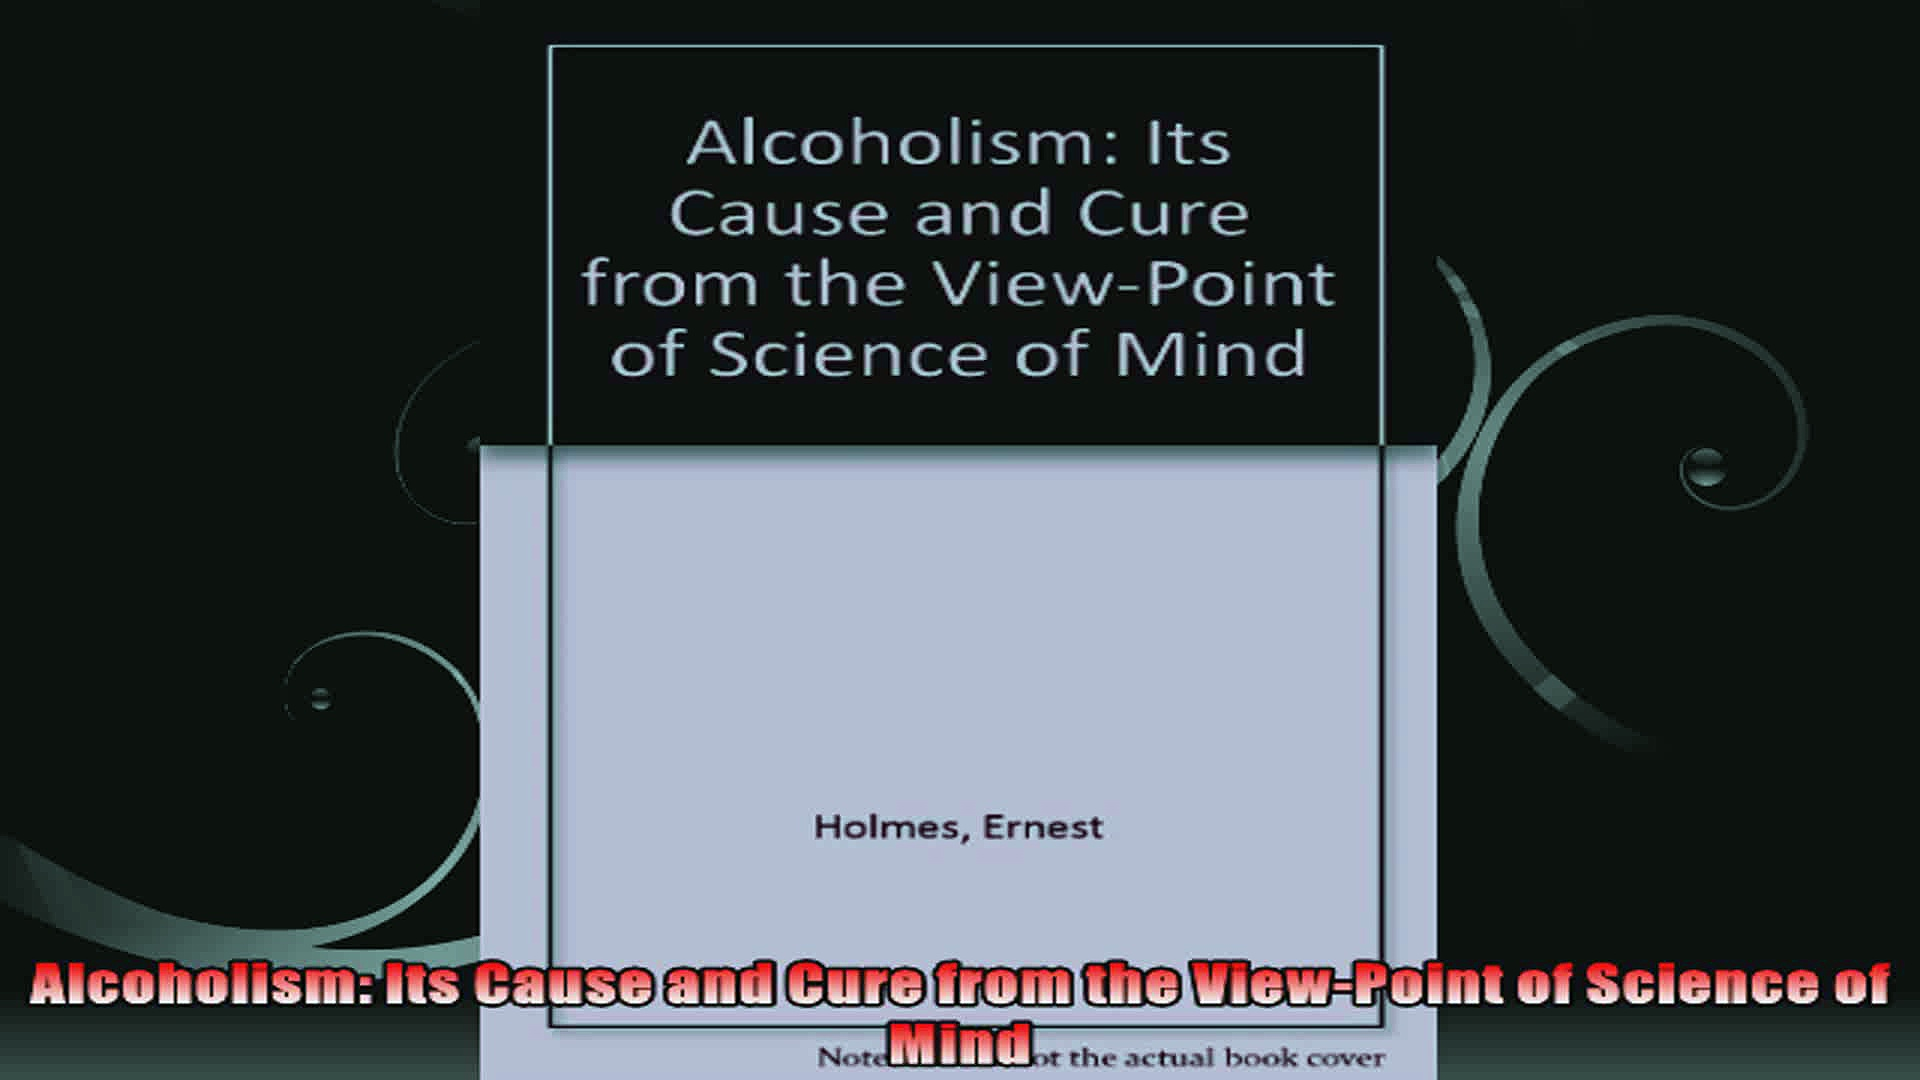 Alcoholism Its Cause and Cure from the ViewPoint of Science of Mind